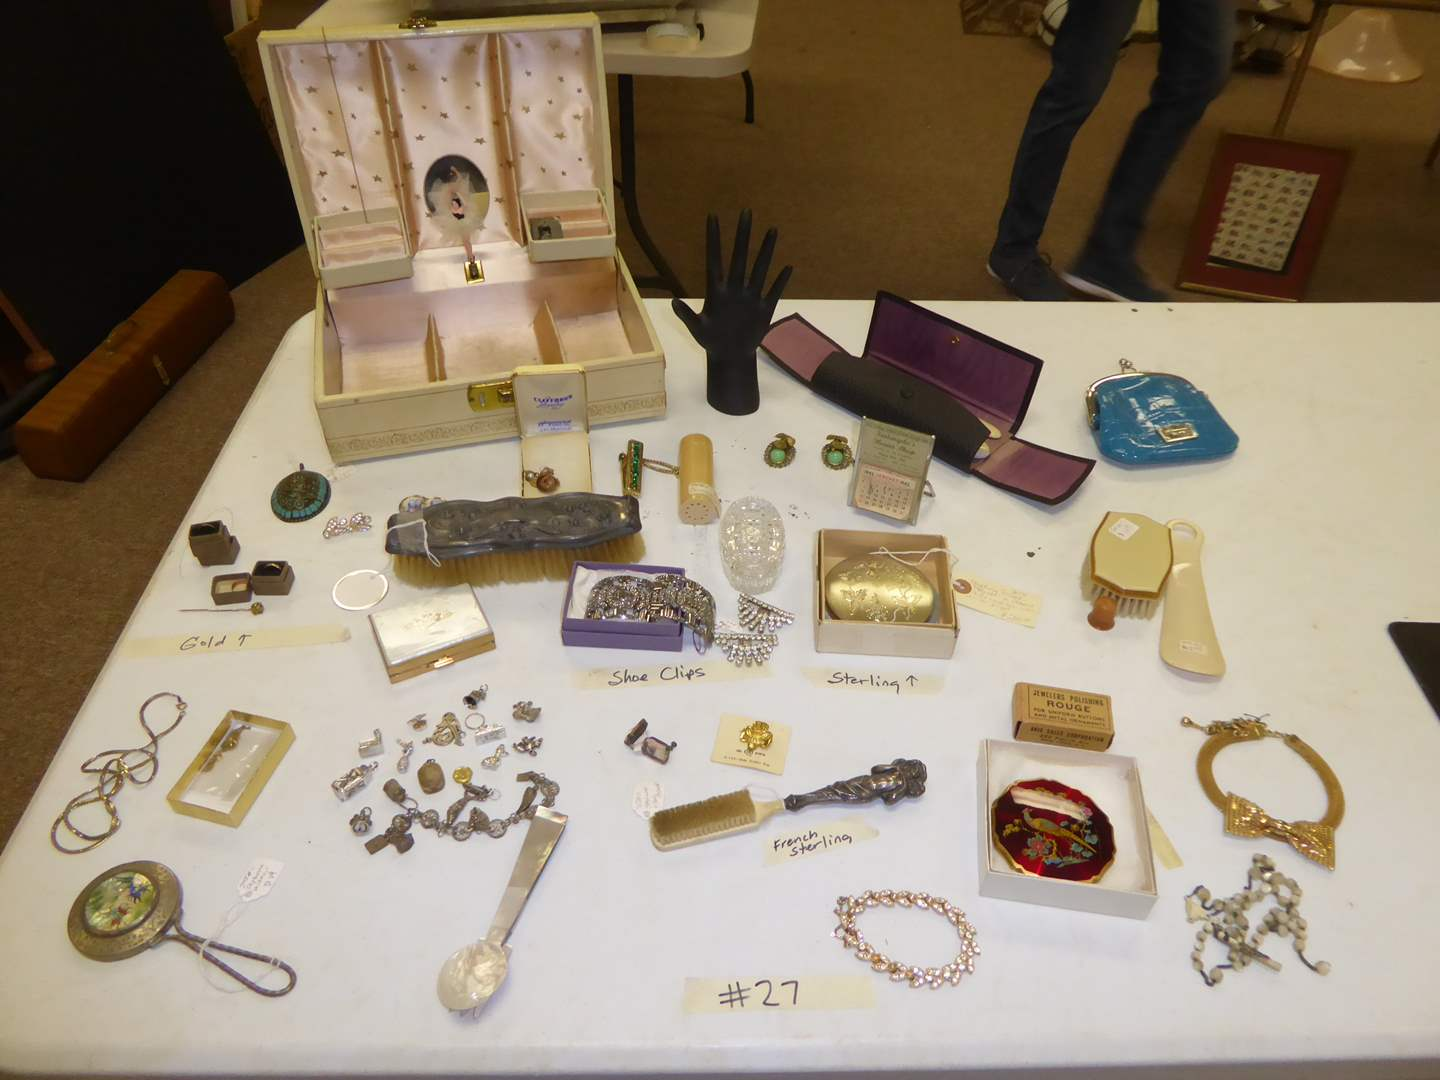 Lot # 27 - Gold Baby Rings, Vintage Grooming Tools, Sterling Compact & More  (main image)